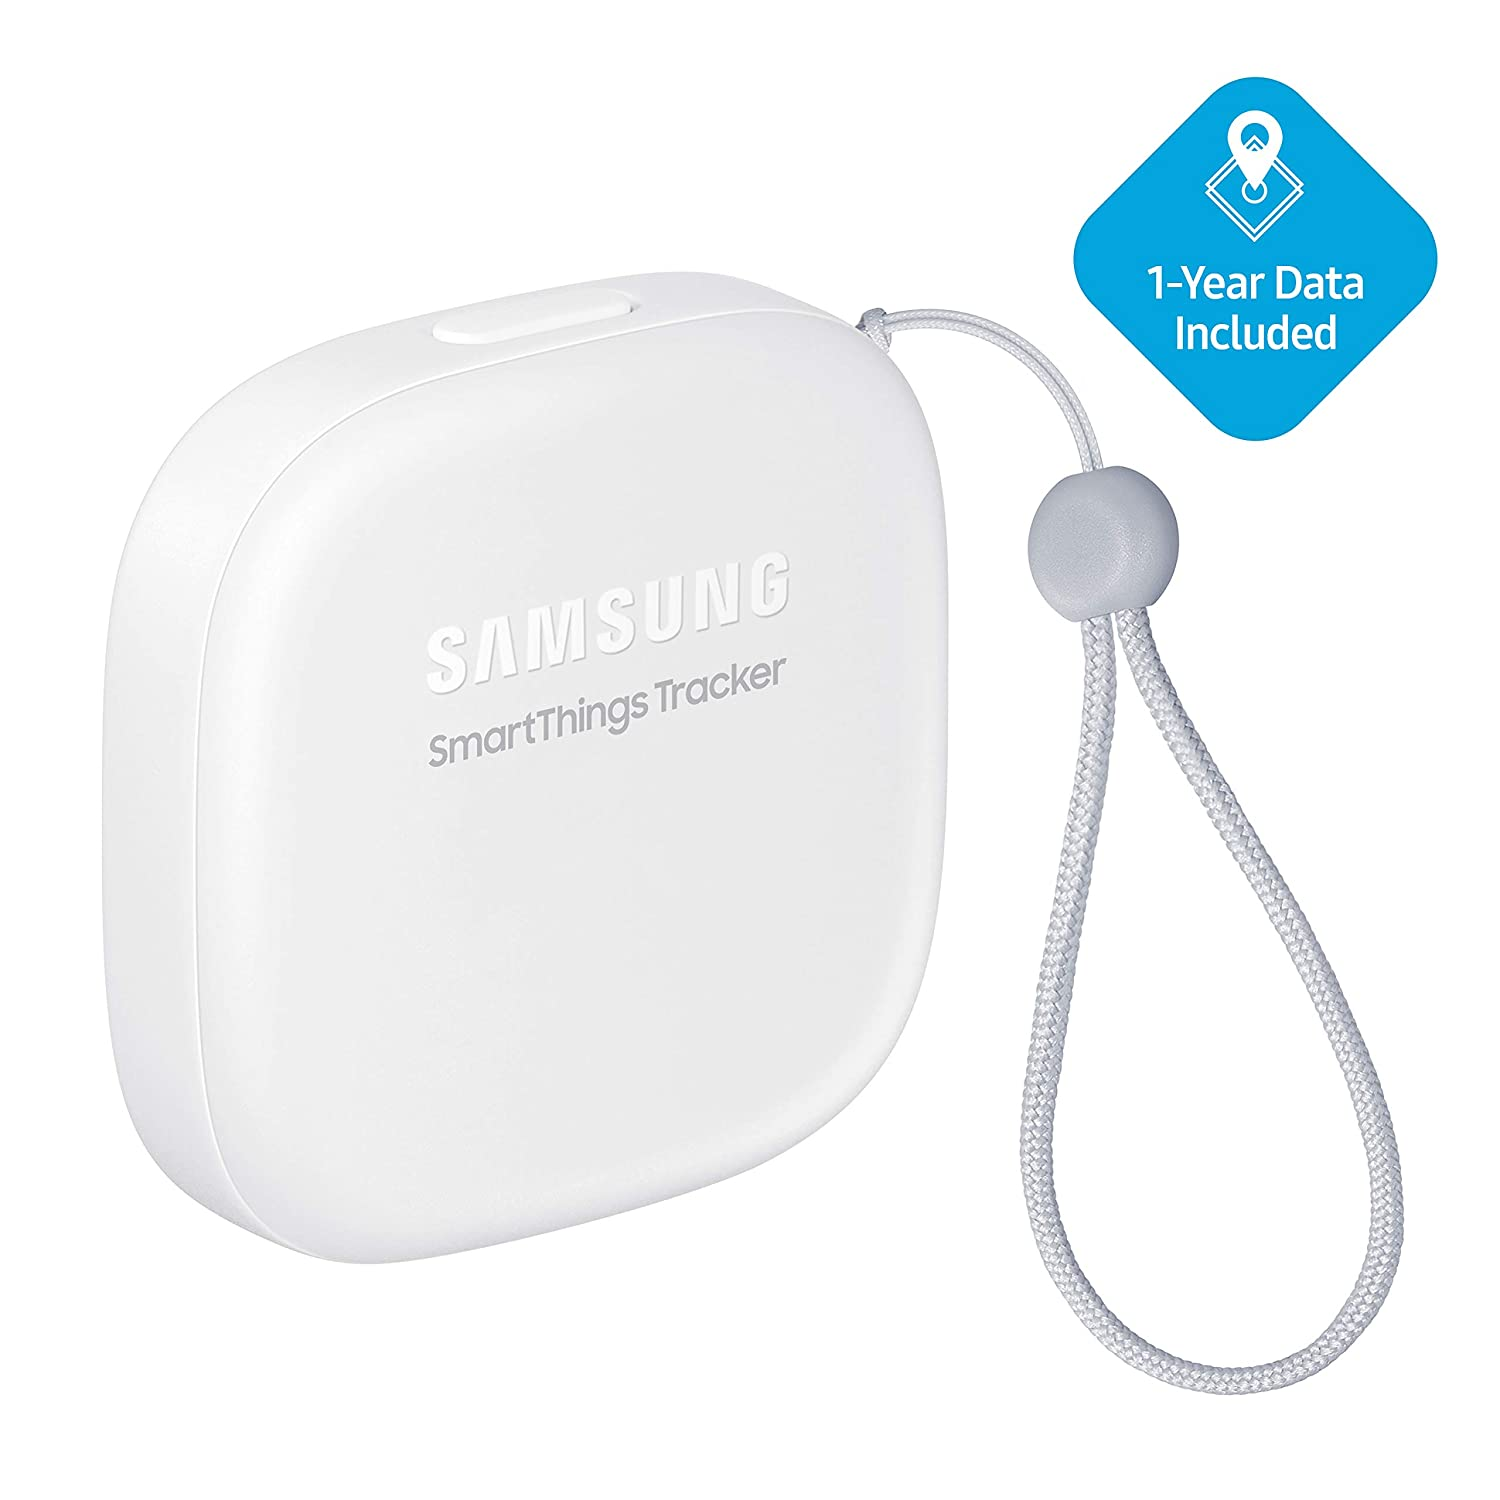 Samsung SmartThings Tracker [SM-V110AZWAATT] Live GPS-Enabled Tracking via Nationwide LTE-M Networks | Use for Kids, Cars, Keys, Pets Wallets, Luggage, and More - Small, White